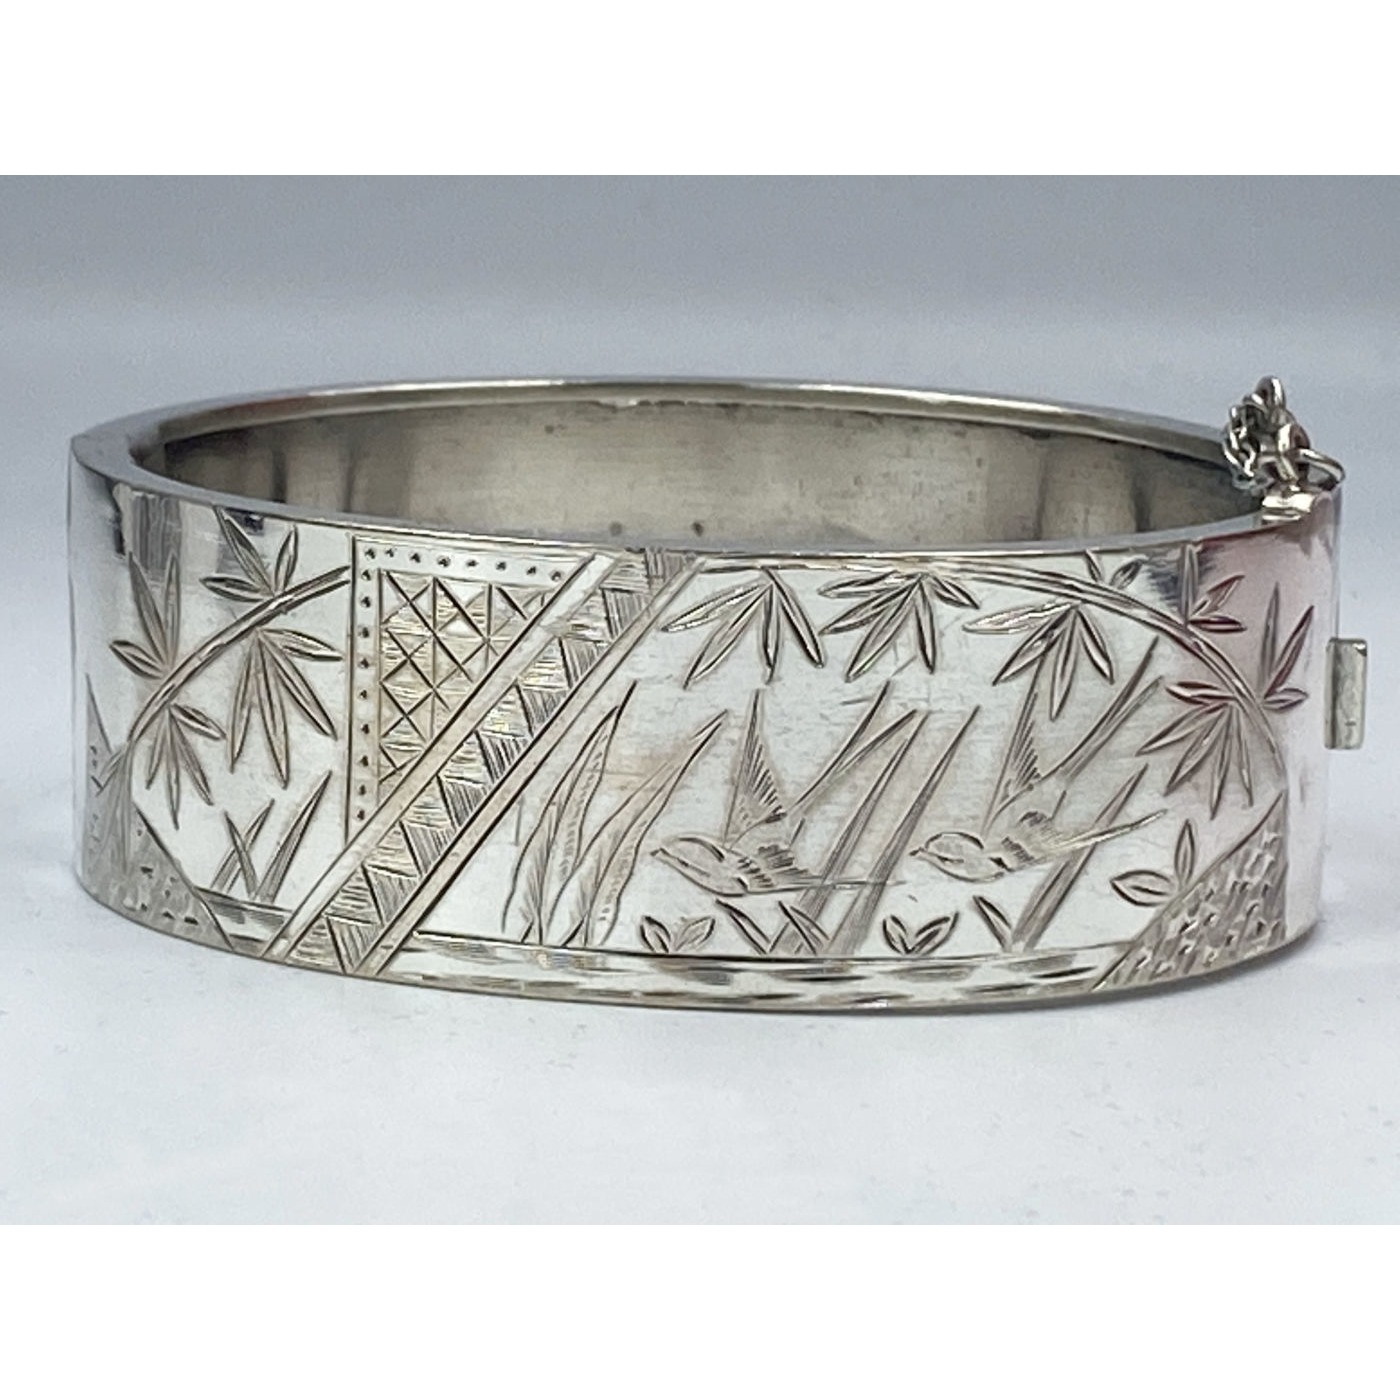 Stylized Birds and Trees, I Will Return Motto, Antique English Silver Bangle